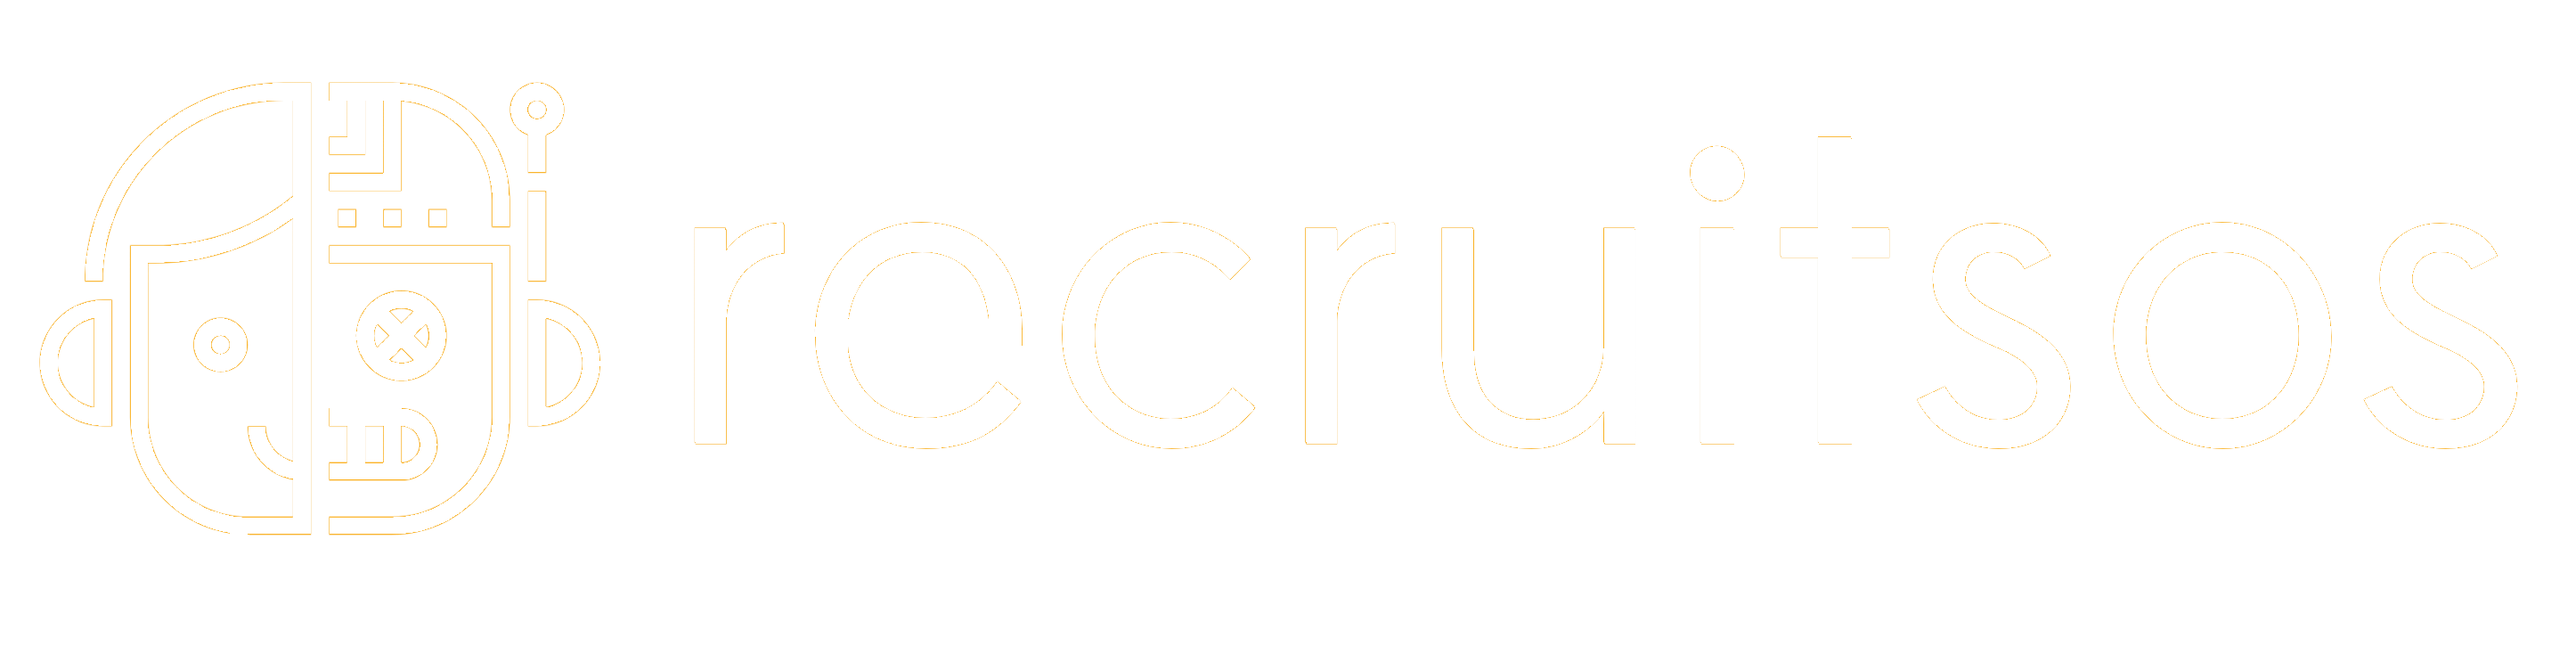 recruitsos, recruitment automation